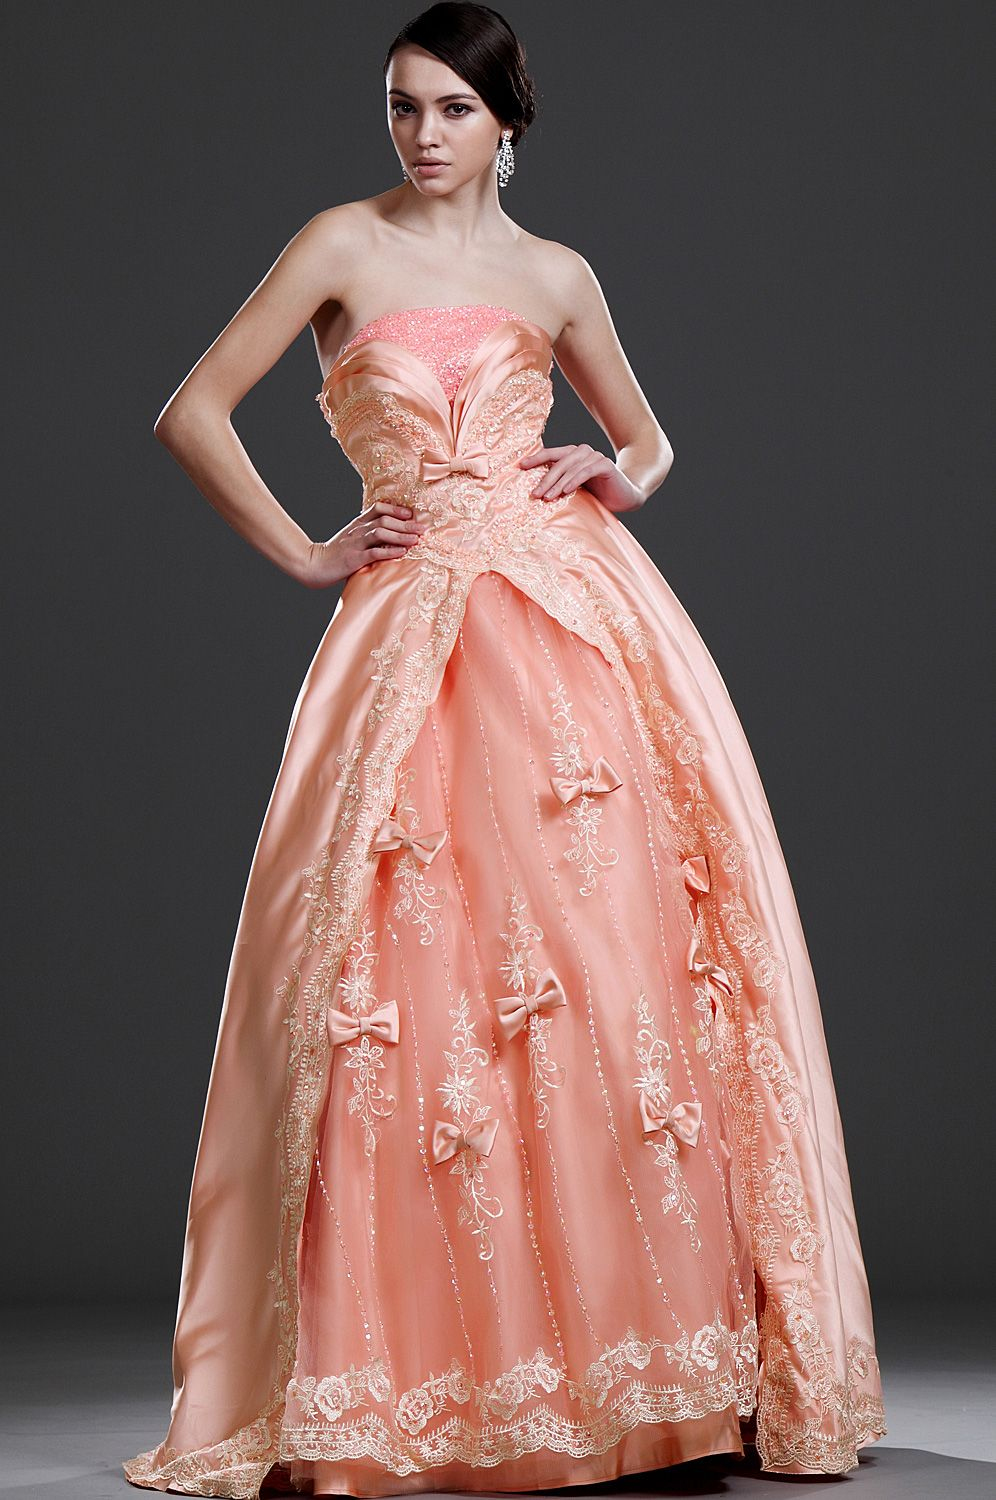 fairytale dress ♥ | Beautiful dresses | Pinterest | vestidos XV ...